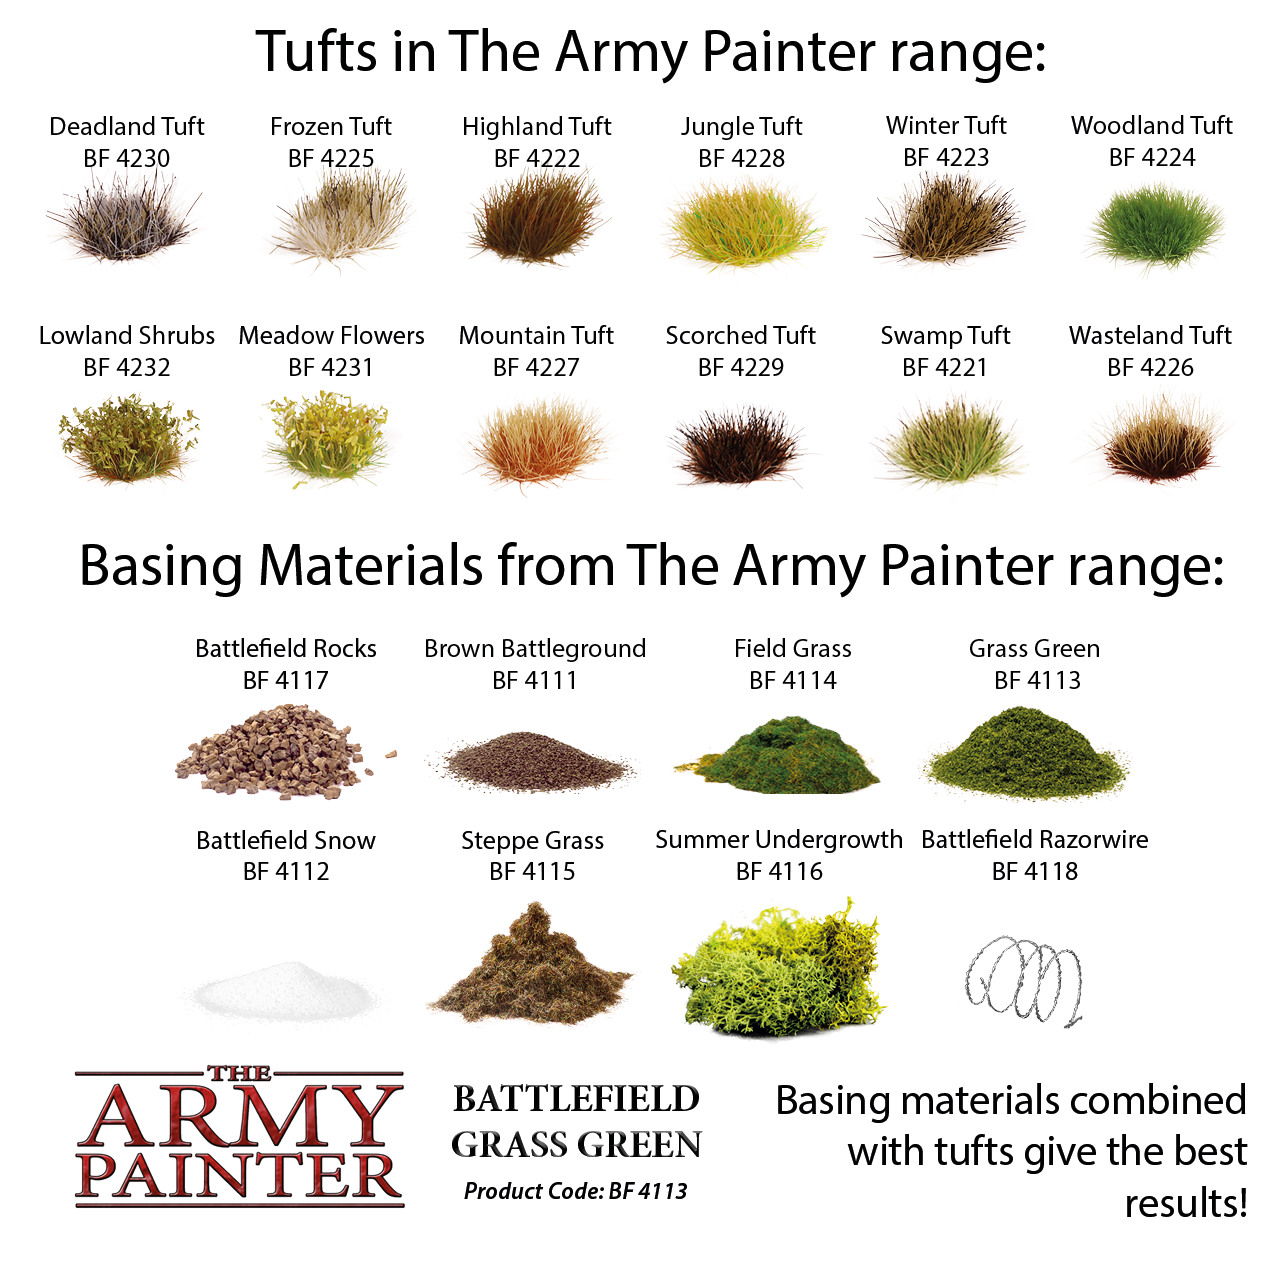 Army Painter Battlefield Grass Green